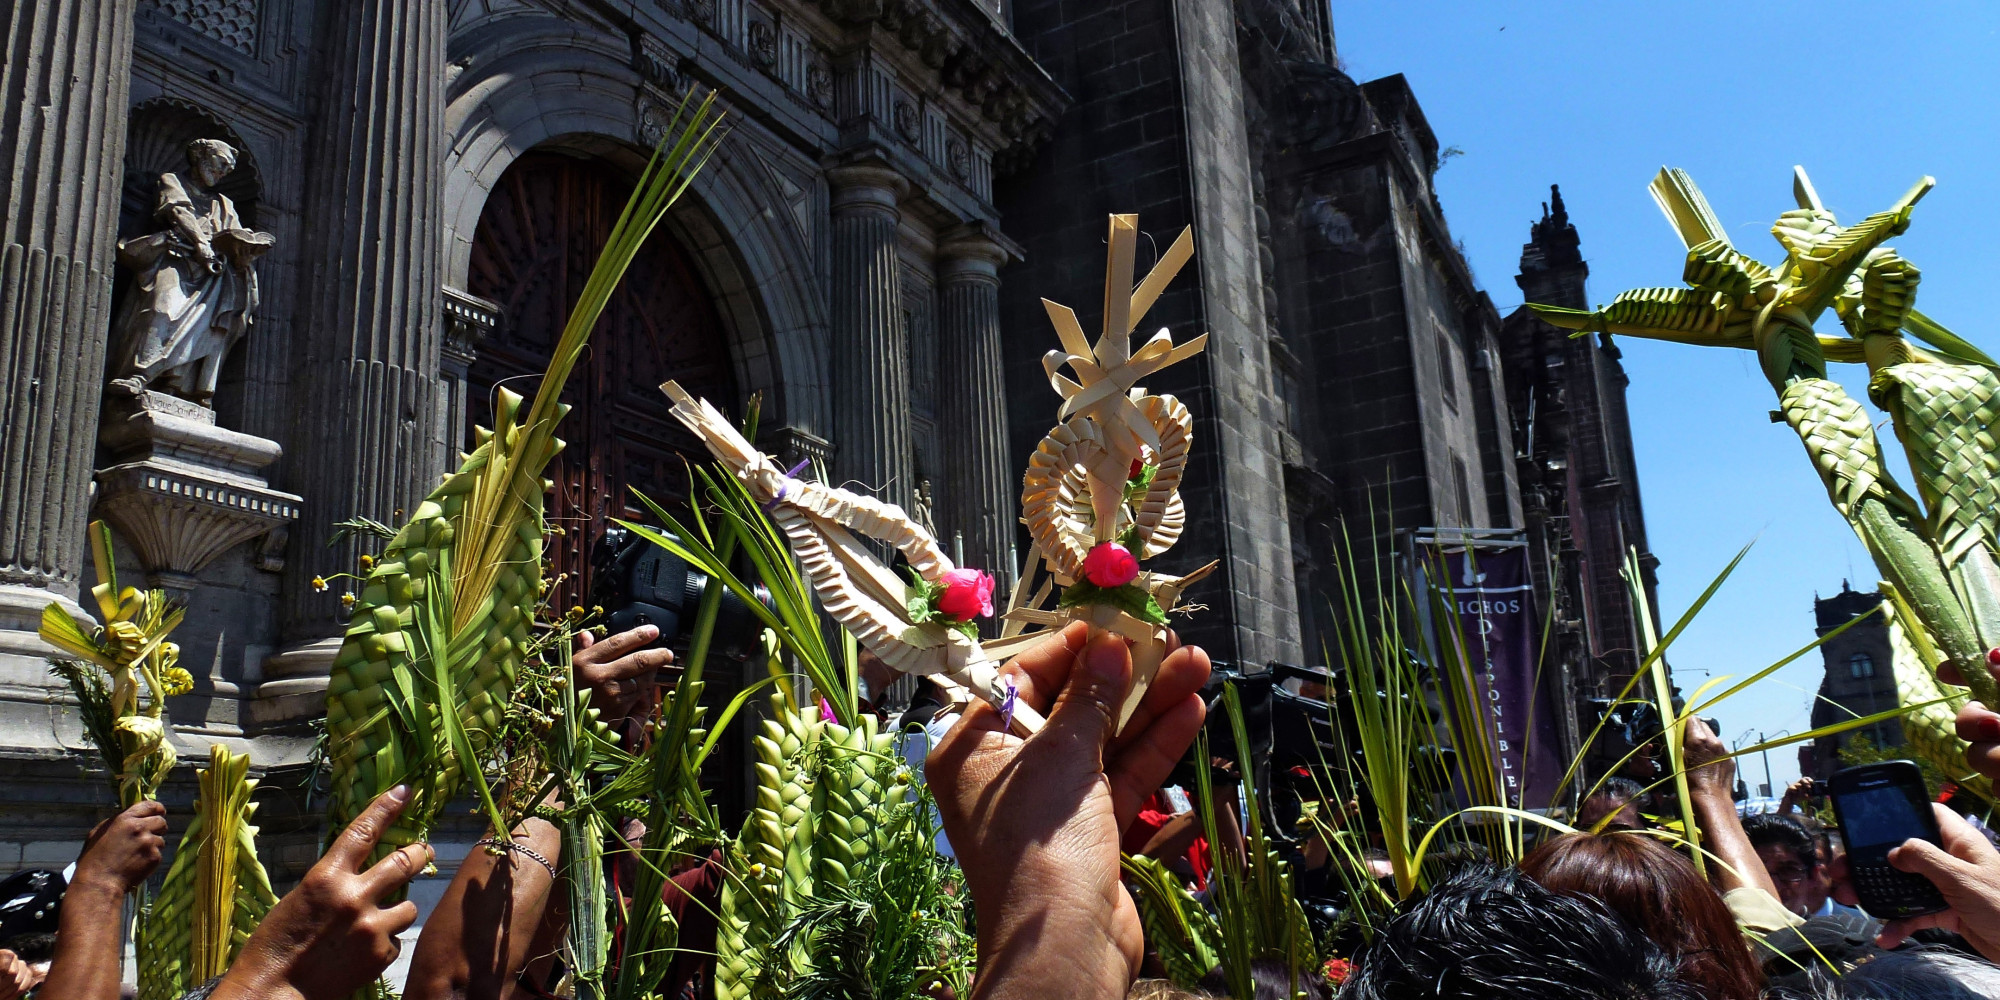 Palm The History And Traditions, Of Sunday Dates, 2014: